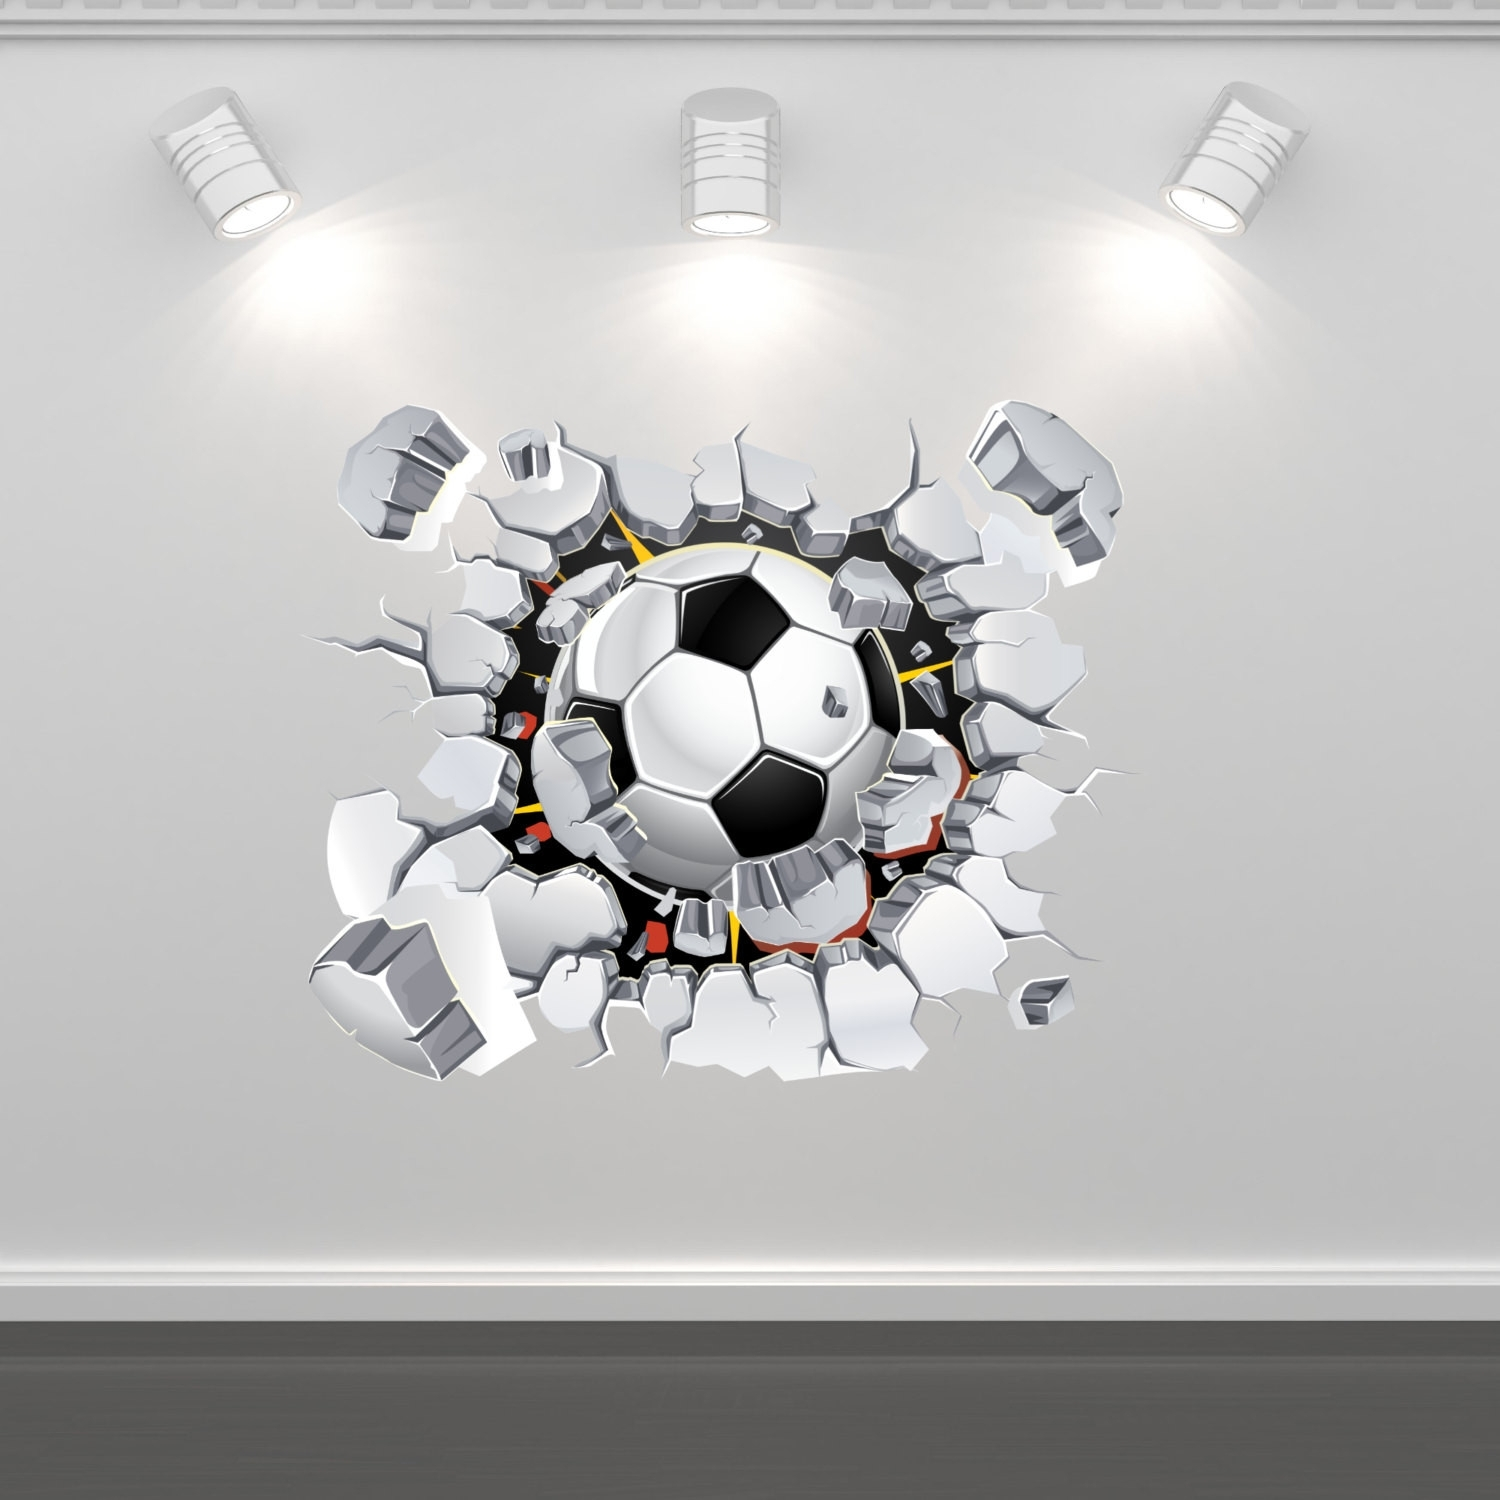 Lovely Soccer Wall Decals Design Of Football Wall Art | Wall Art Inside Newest Soccer Wall Art (Gallery 6 of 20)